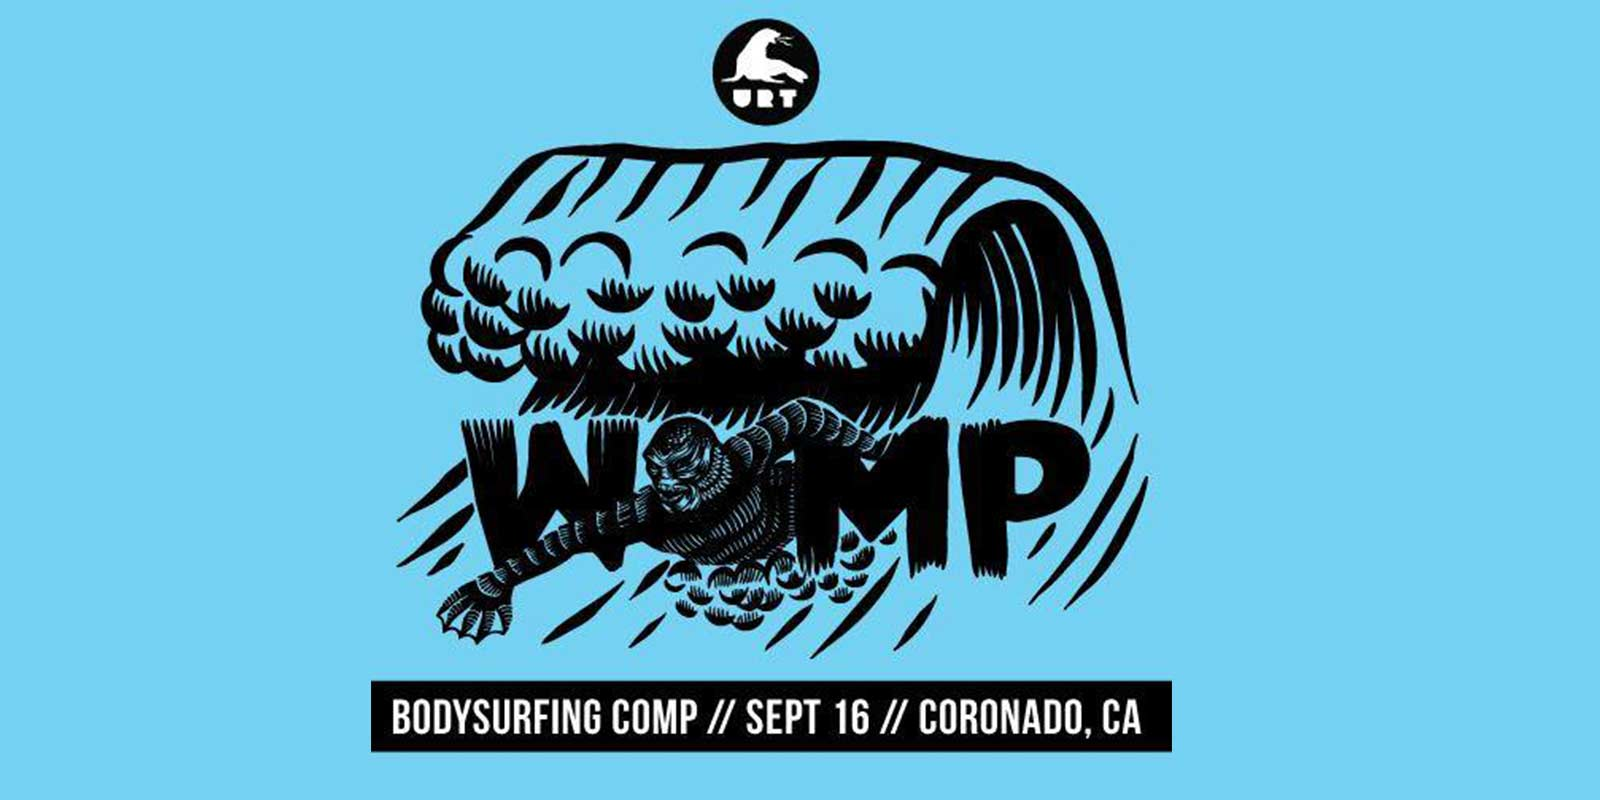 Newly Announced URT Bodysurfing & Handboard Competition Sept Coronado California